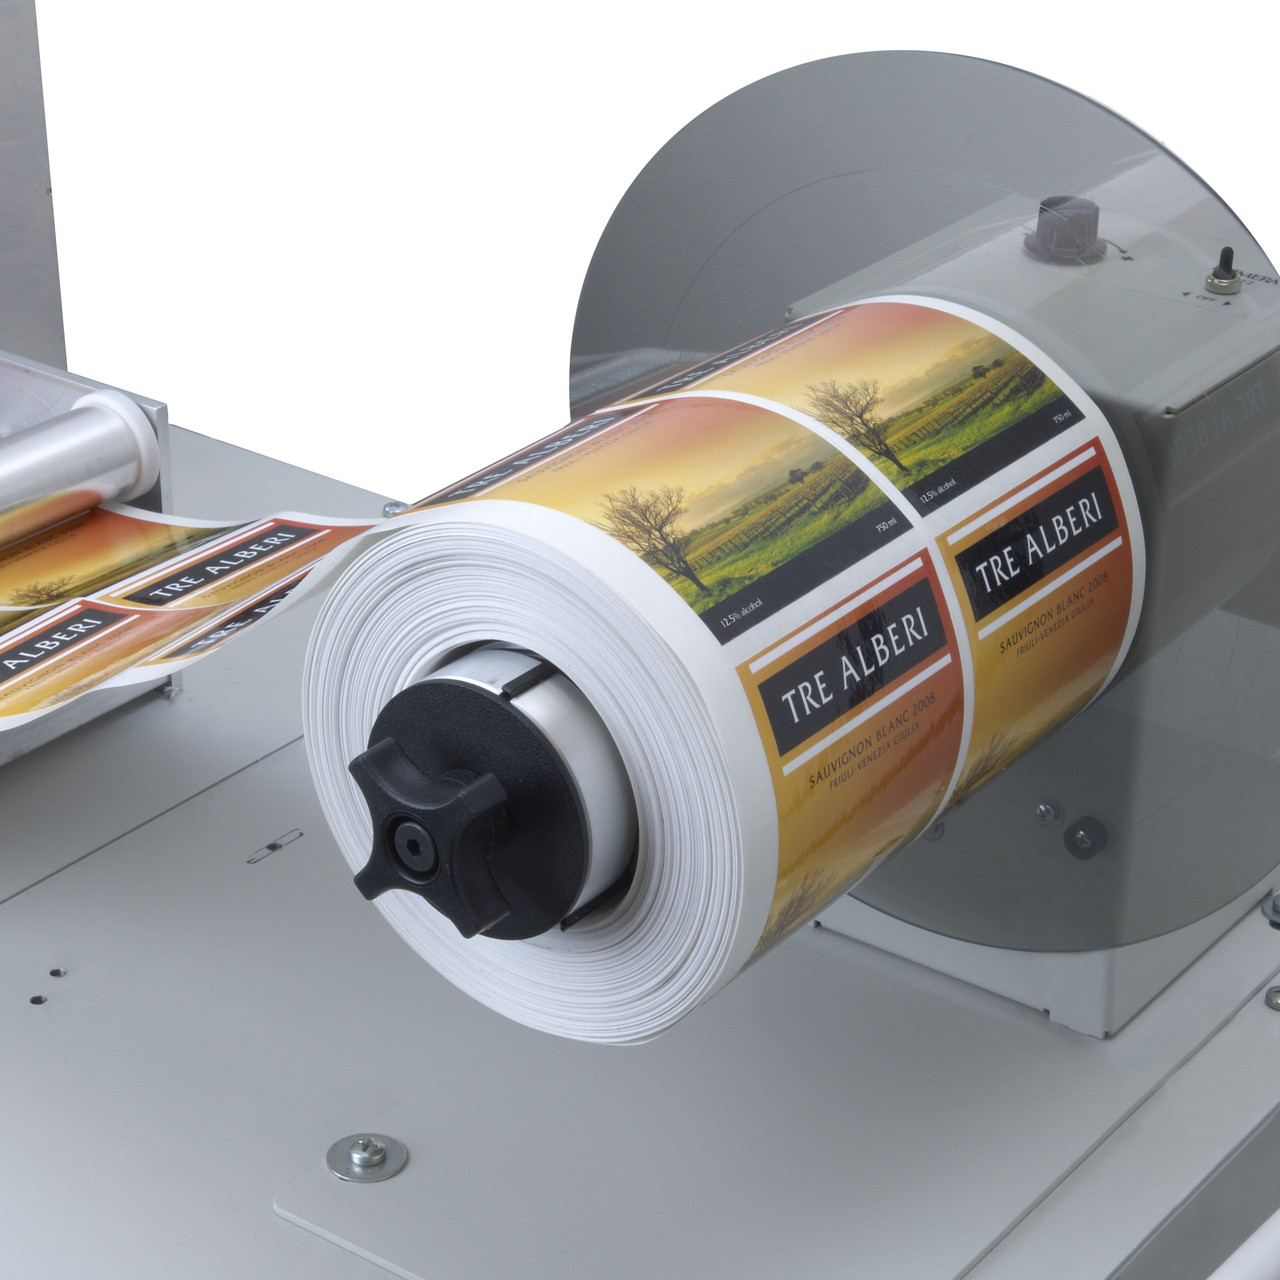 Label rewinder is also integrated with the Primera FX1200 label finishing system